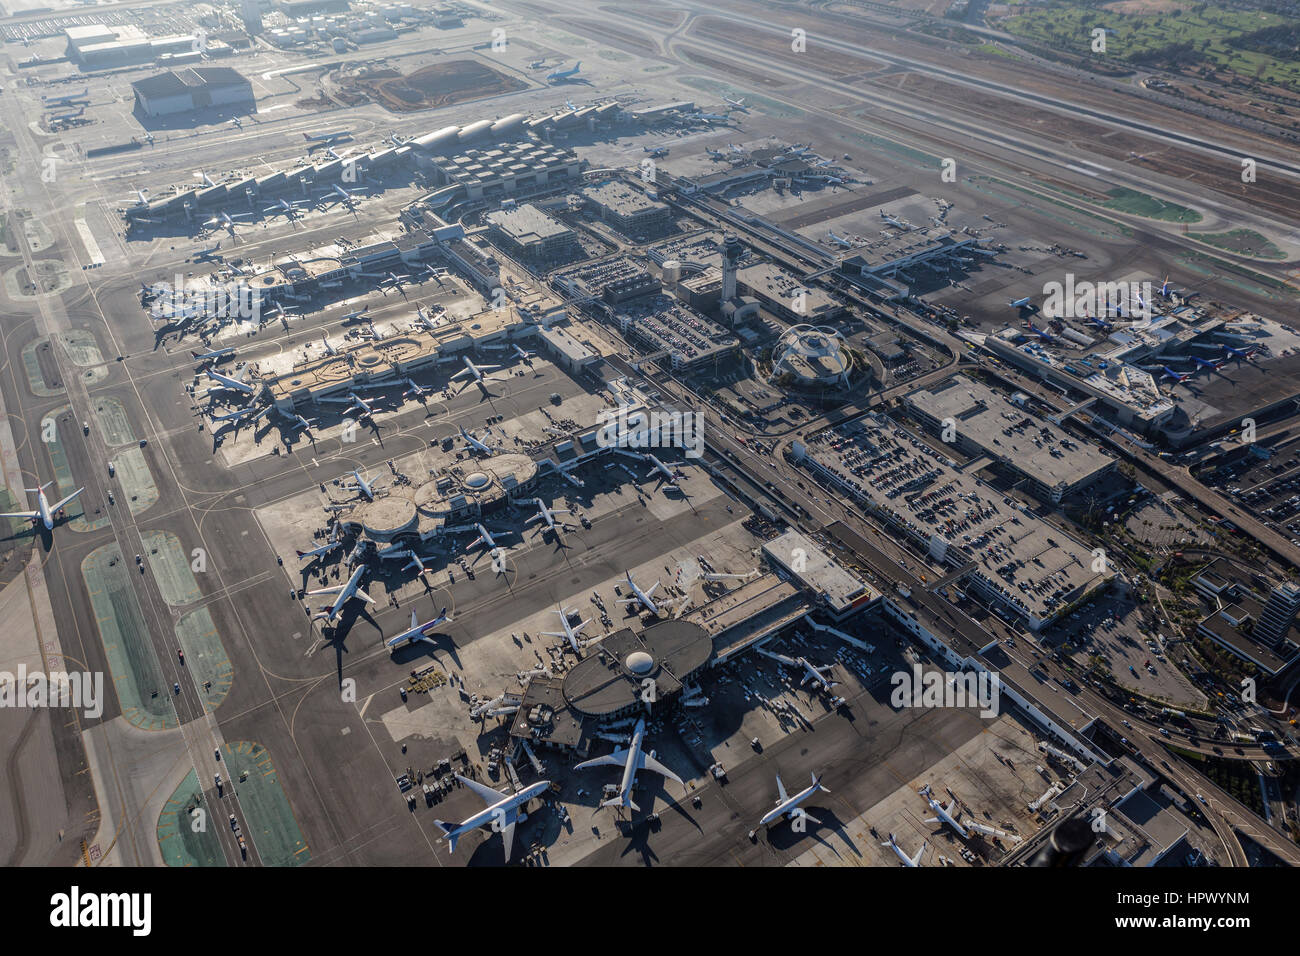 Los Angeles, California, USA - August 16, 2016:  Aerial view of the busy LAX terminals, control tower and parking - Stock Image